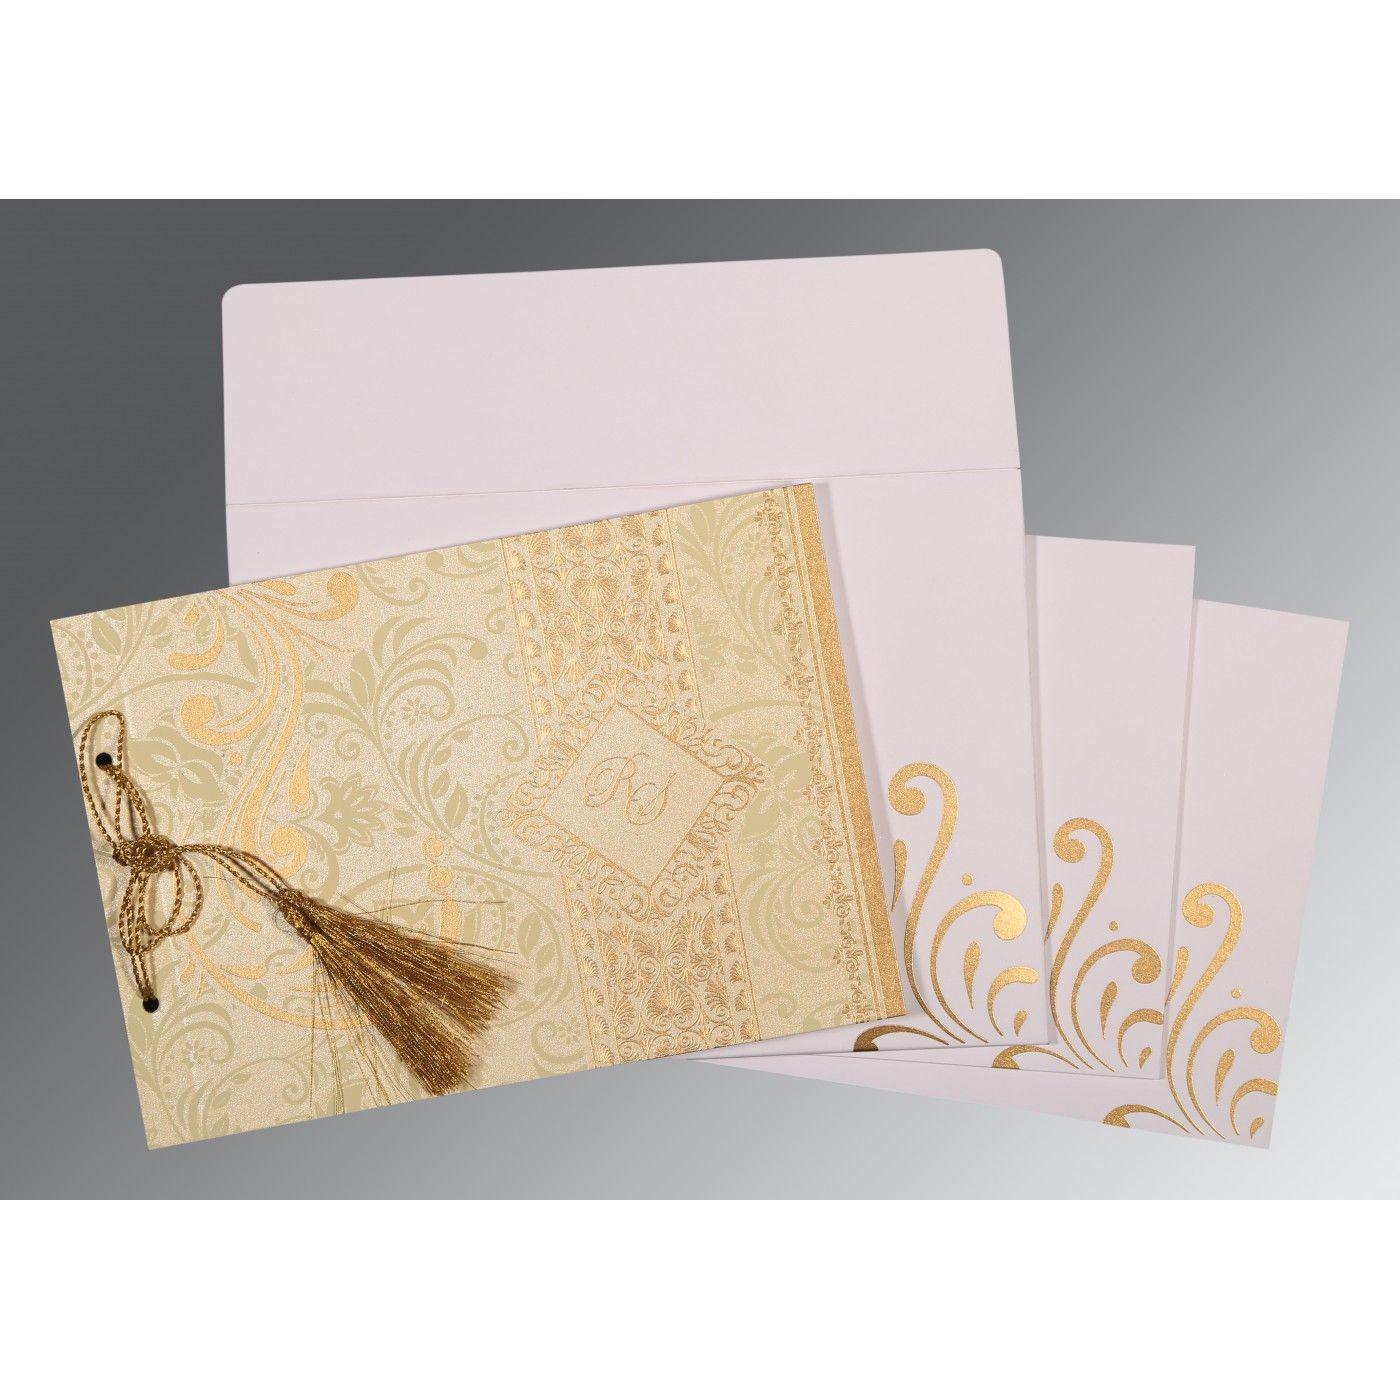 CHAMOISEE SHIMMERY SCREEN PRINTED WEDDING CARD : CD-8223L - IndianWeddingCards